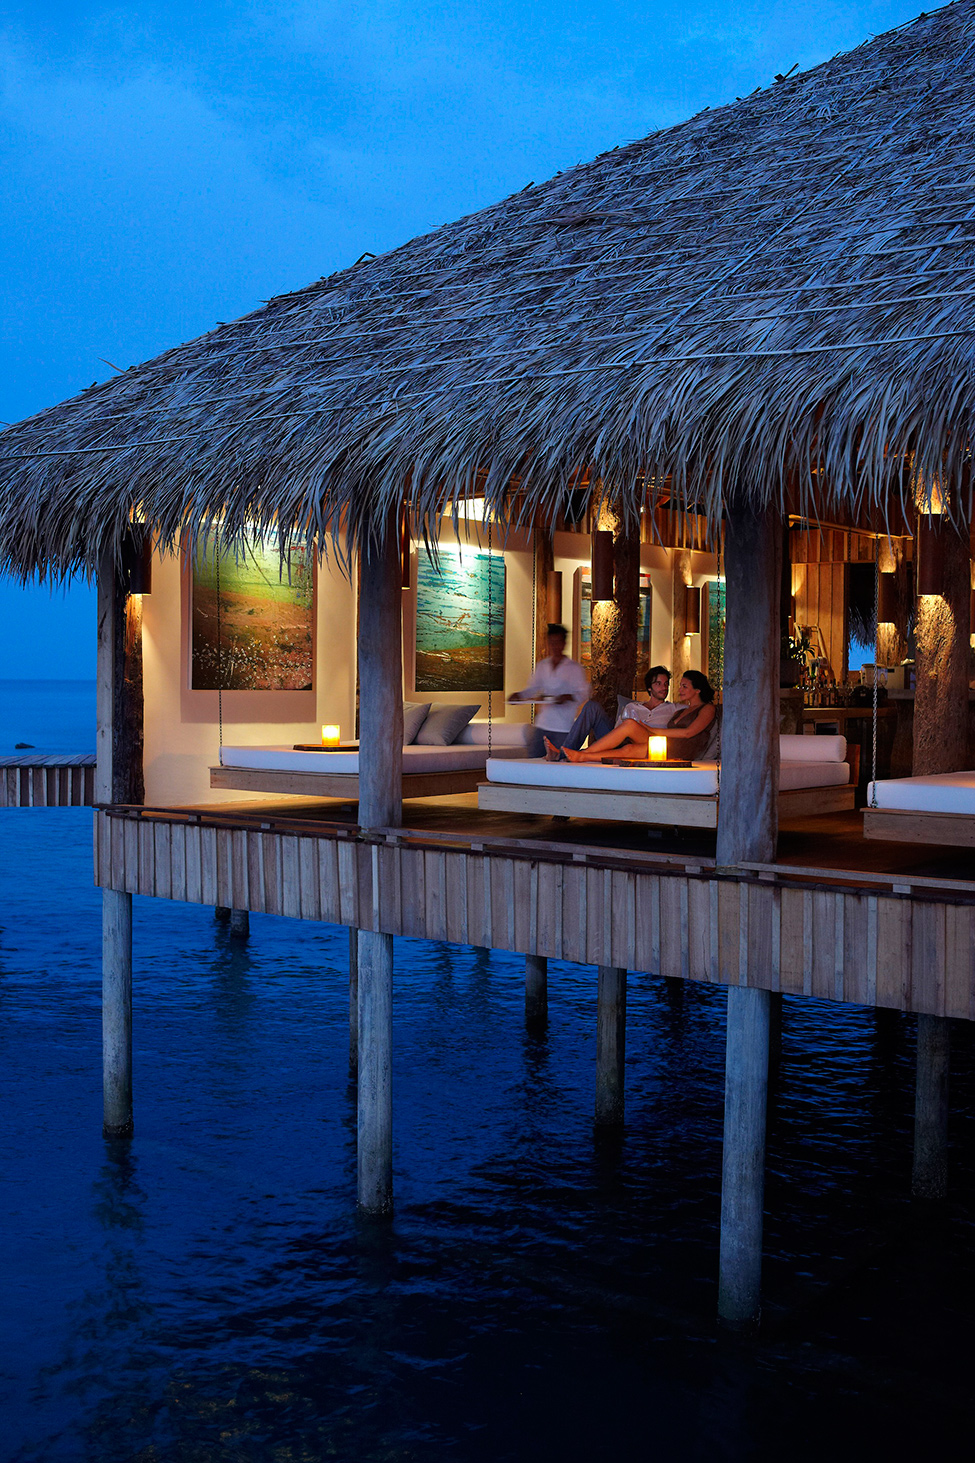 Song Saa : Private Remote Island Resorts In Cambodia: Detail Of Stunning Over Water Vista Bar Design At Night